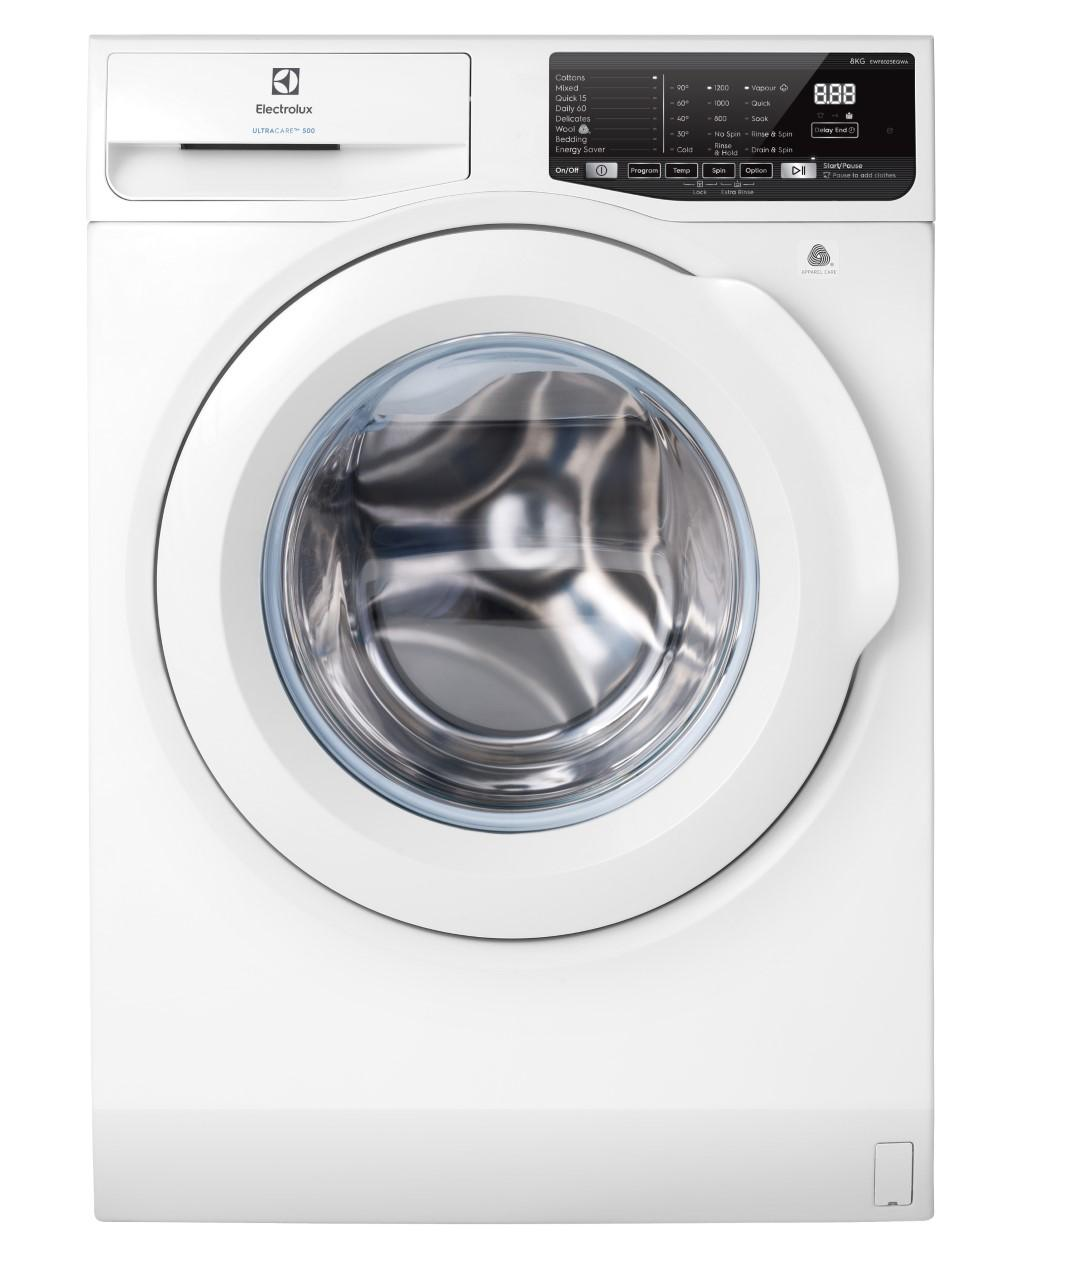 Electrolux Ewf8025eqwa Mesin Cuci By Delta Electronics.